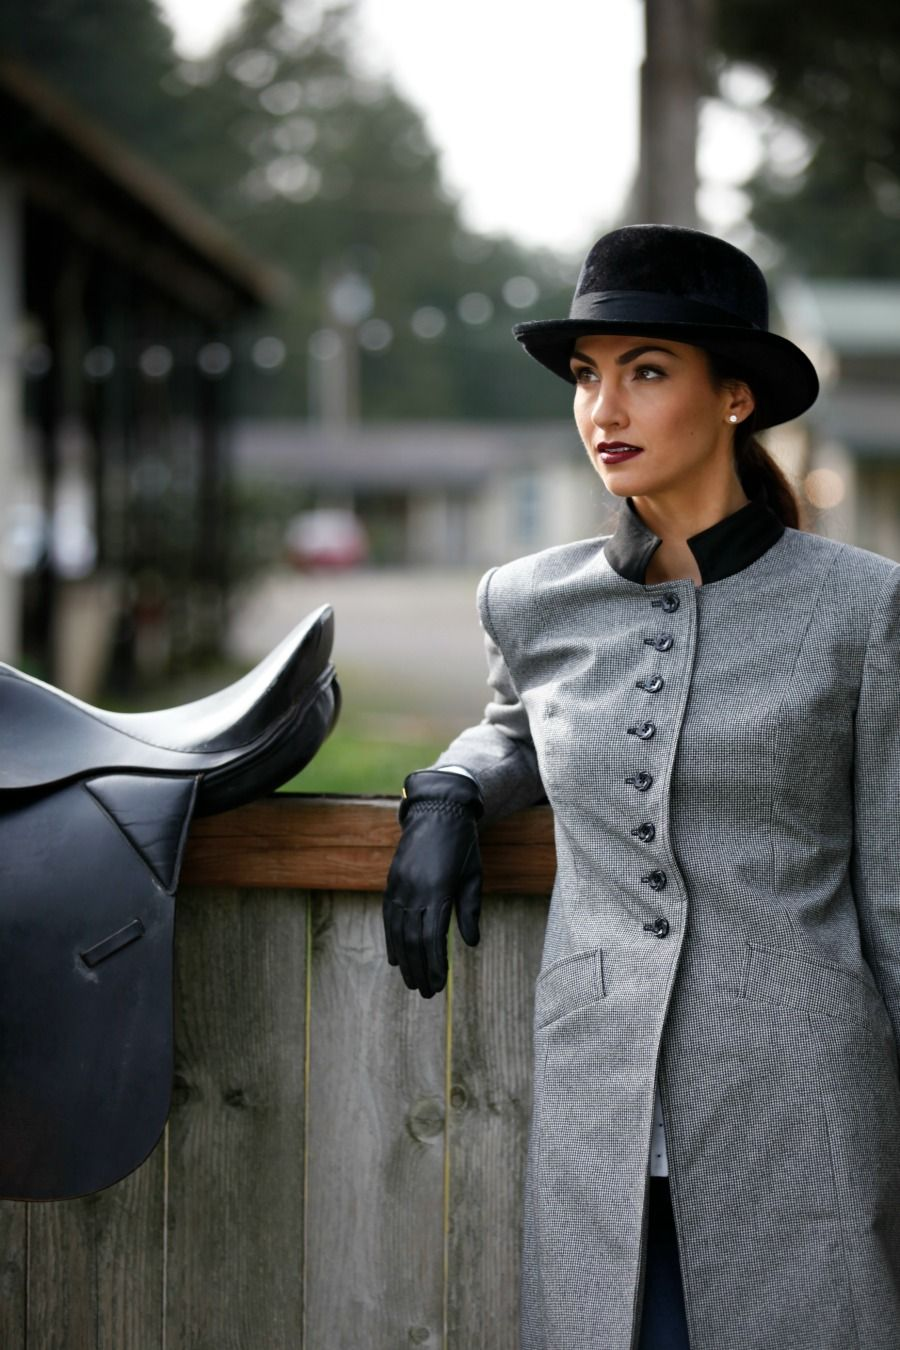 Jackets Coats Equestrian Outfits Riding Outfit Equestrian Style [ 1350 x 900 Pixel ]